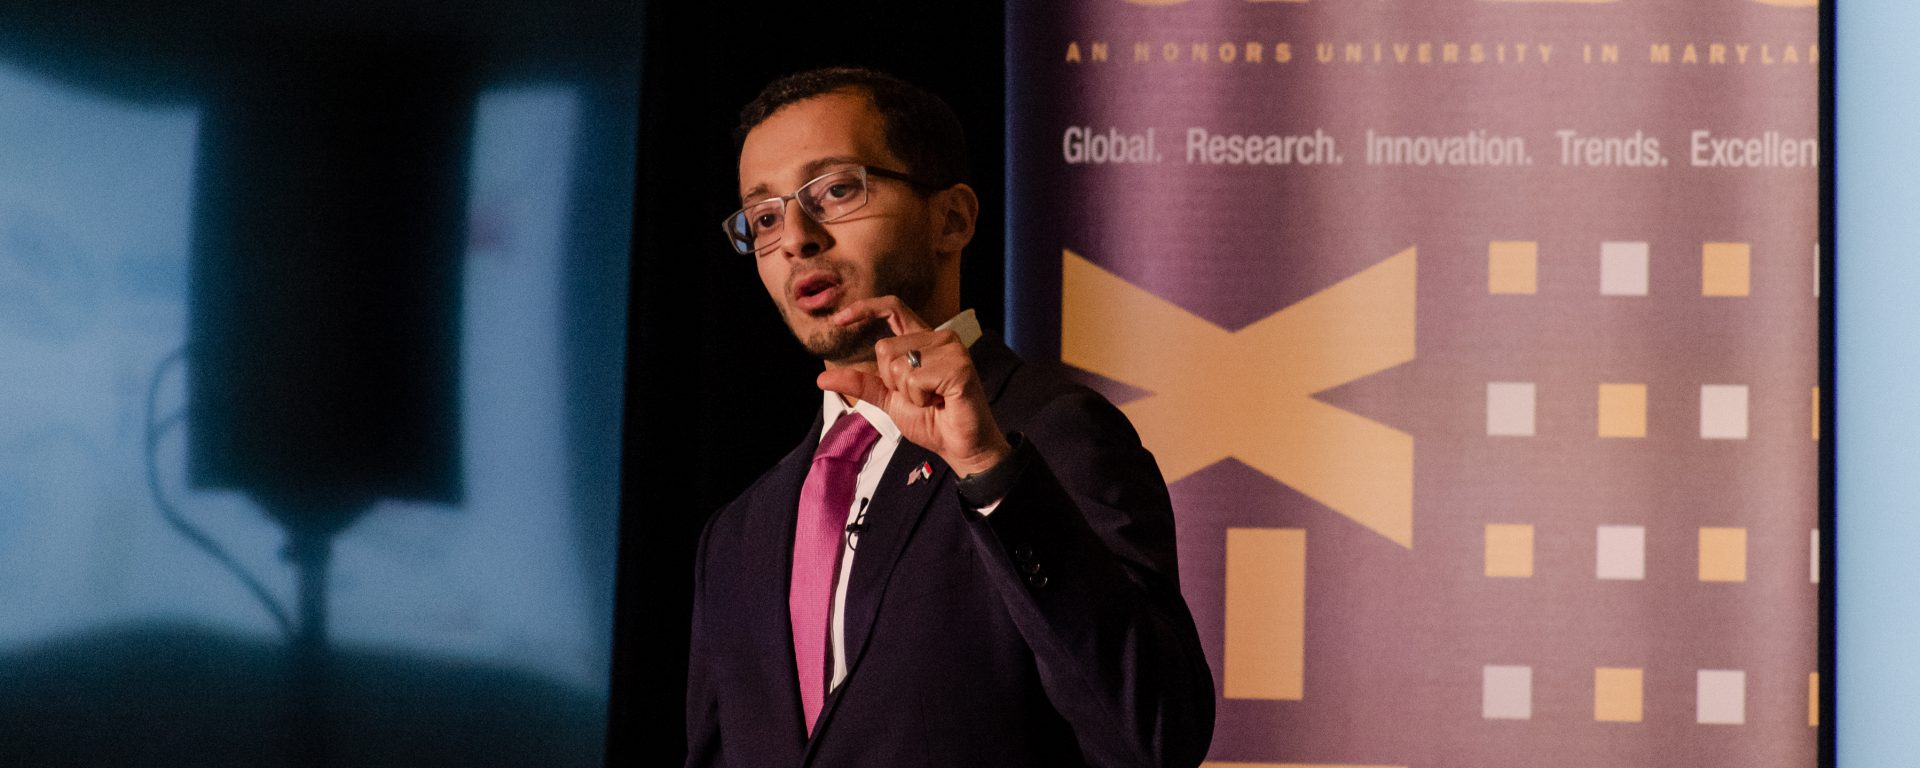 Mustafa Al-Adhami, ME Ph.D. '19, wins national Three-Minute Thesis competition